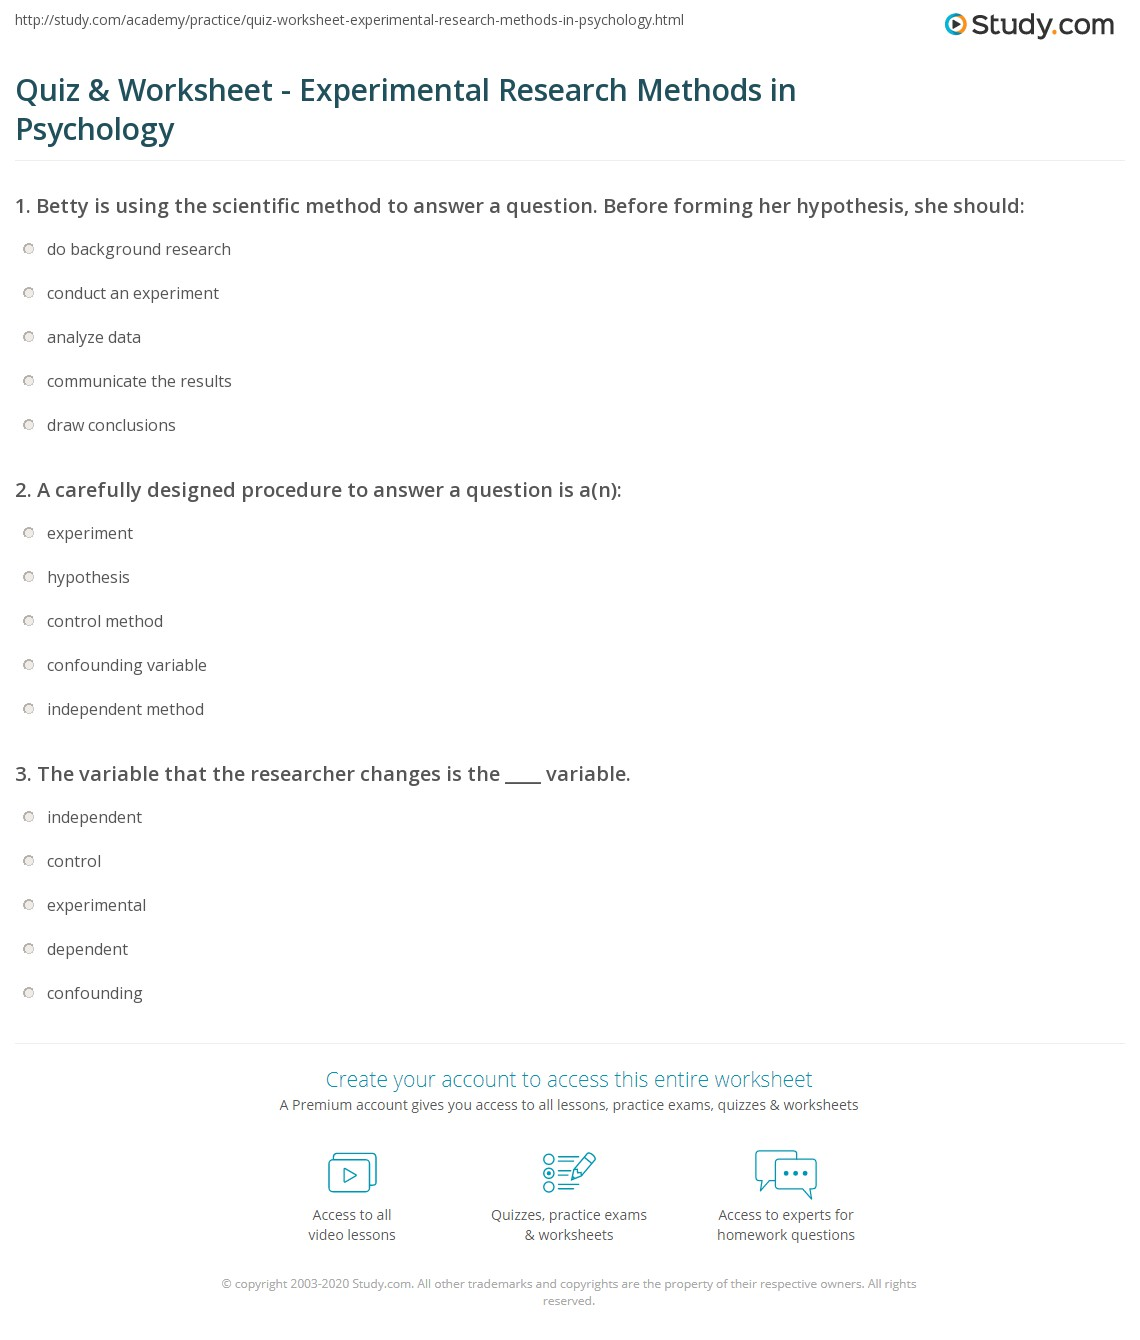 Methods of psychology: a brief description 38